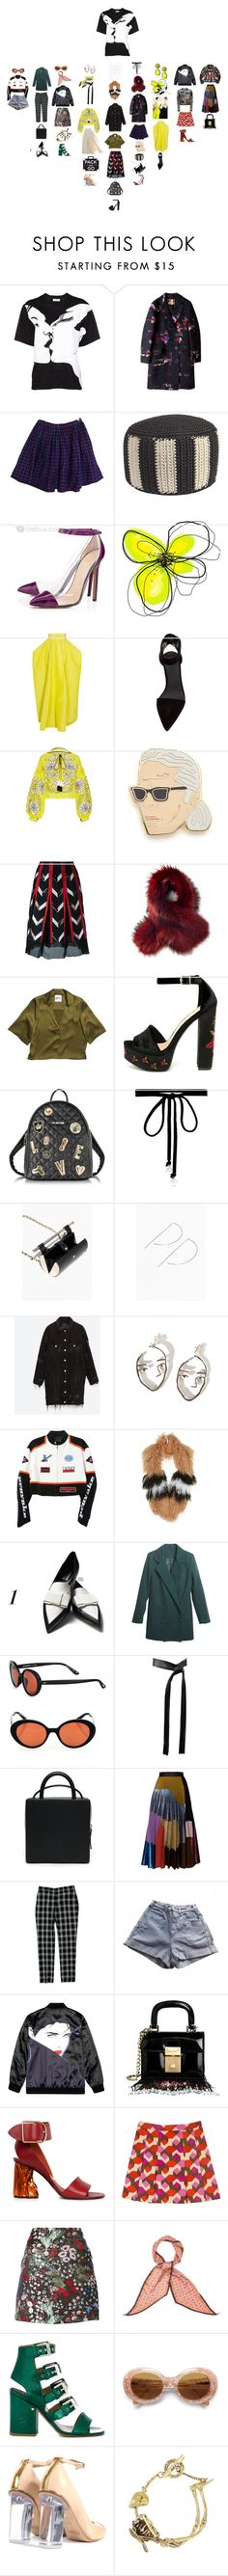 """""""Requiem"""" by duumbblond ❤ liked on Polyvore featuring Thierry Mugler, MSGM, American Apparel, Anne-Claire Petit, Jason Wu, Shourouk, Roksanda Ilincic, Alexander Wang, Yuliya Magdych and Georgia Perry"""